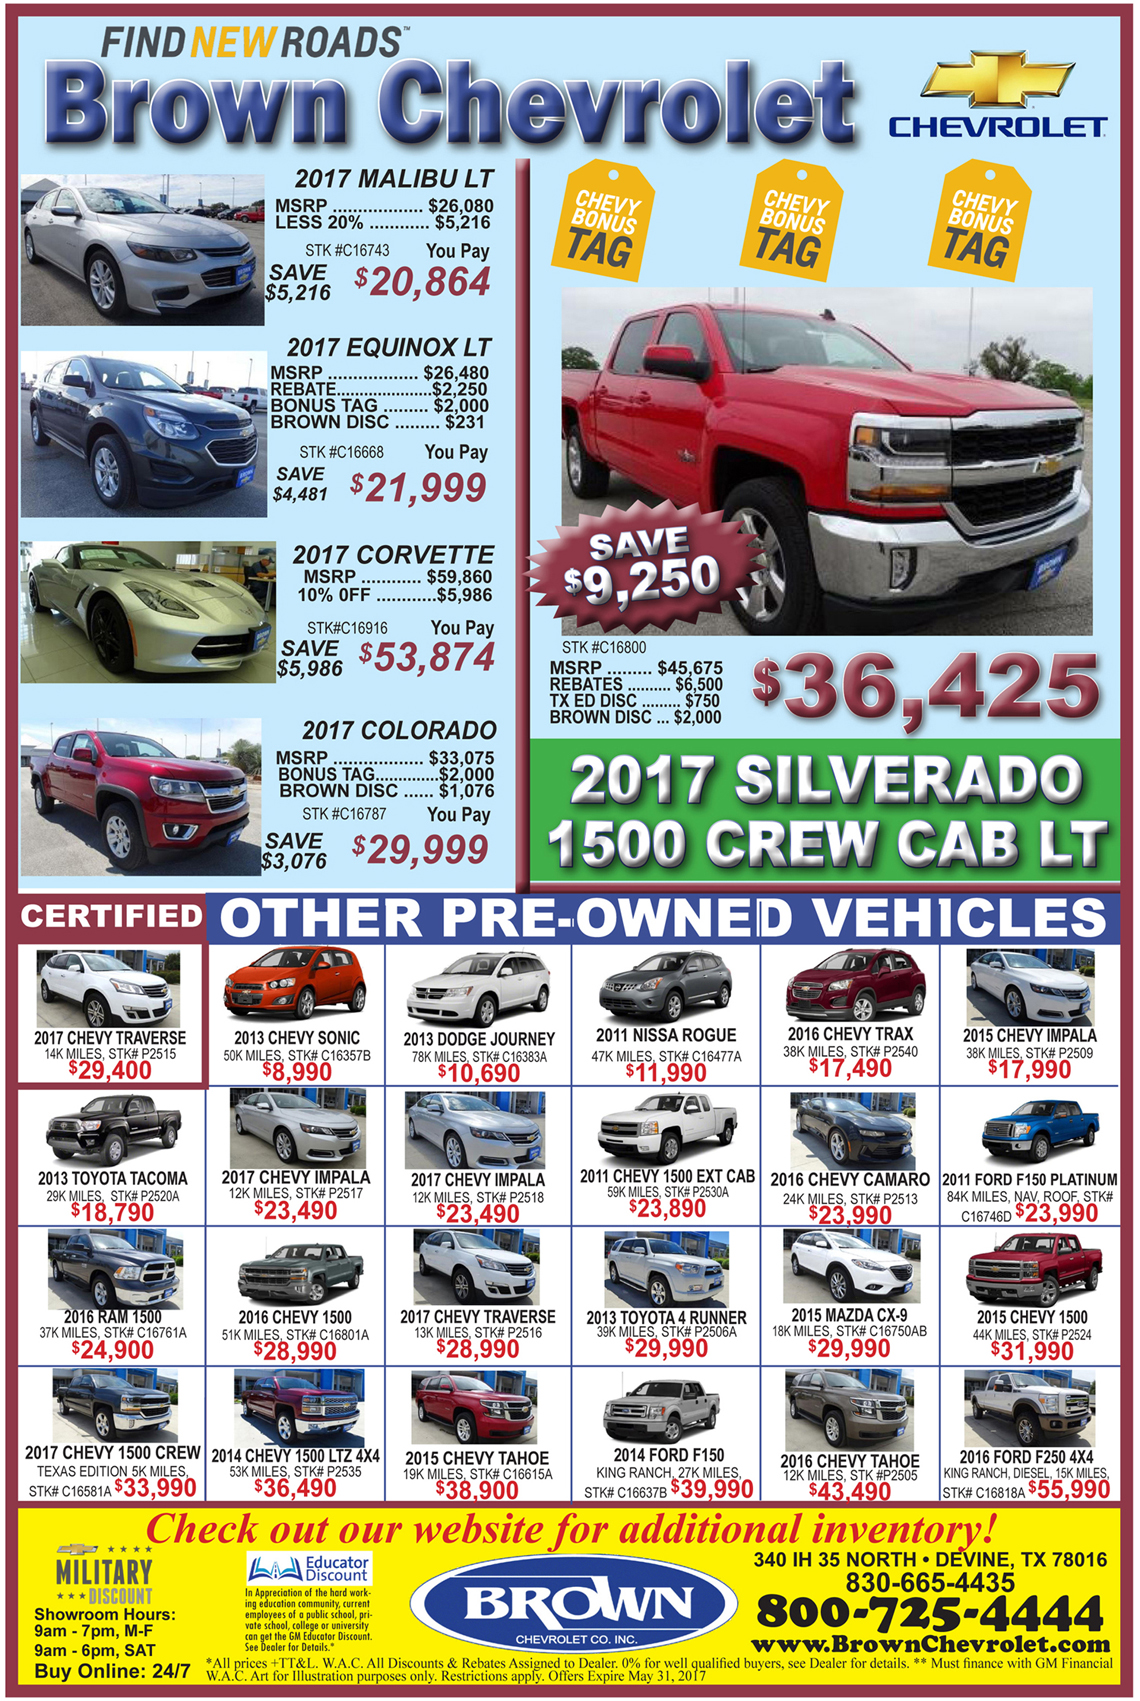 Brown Chevrolet deals for the week of 5-3-17